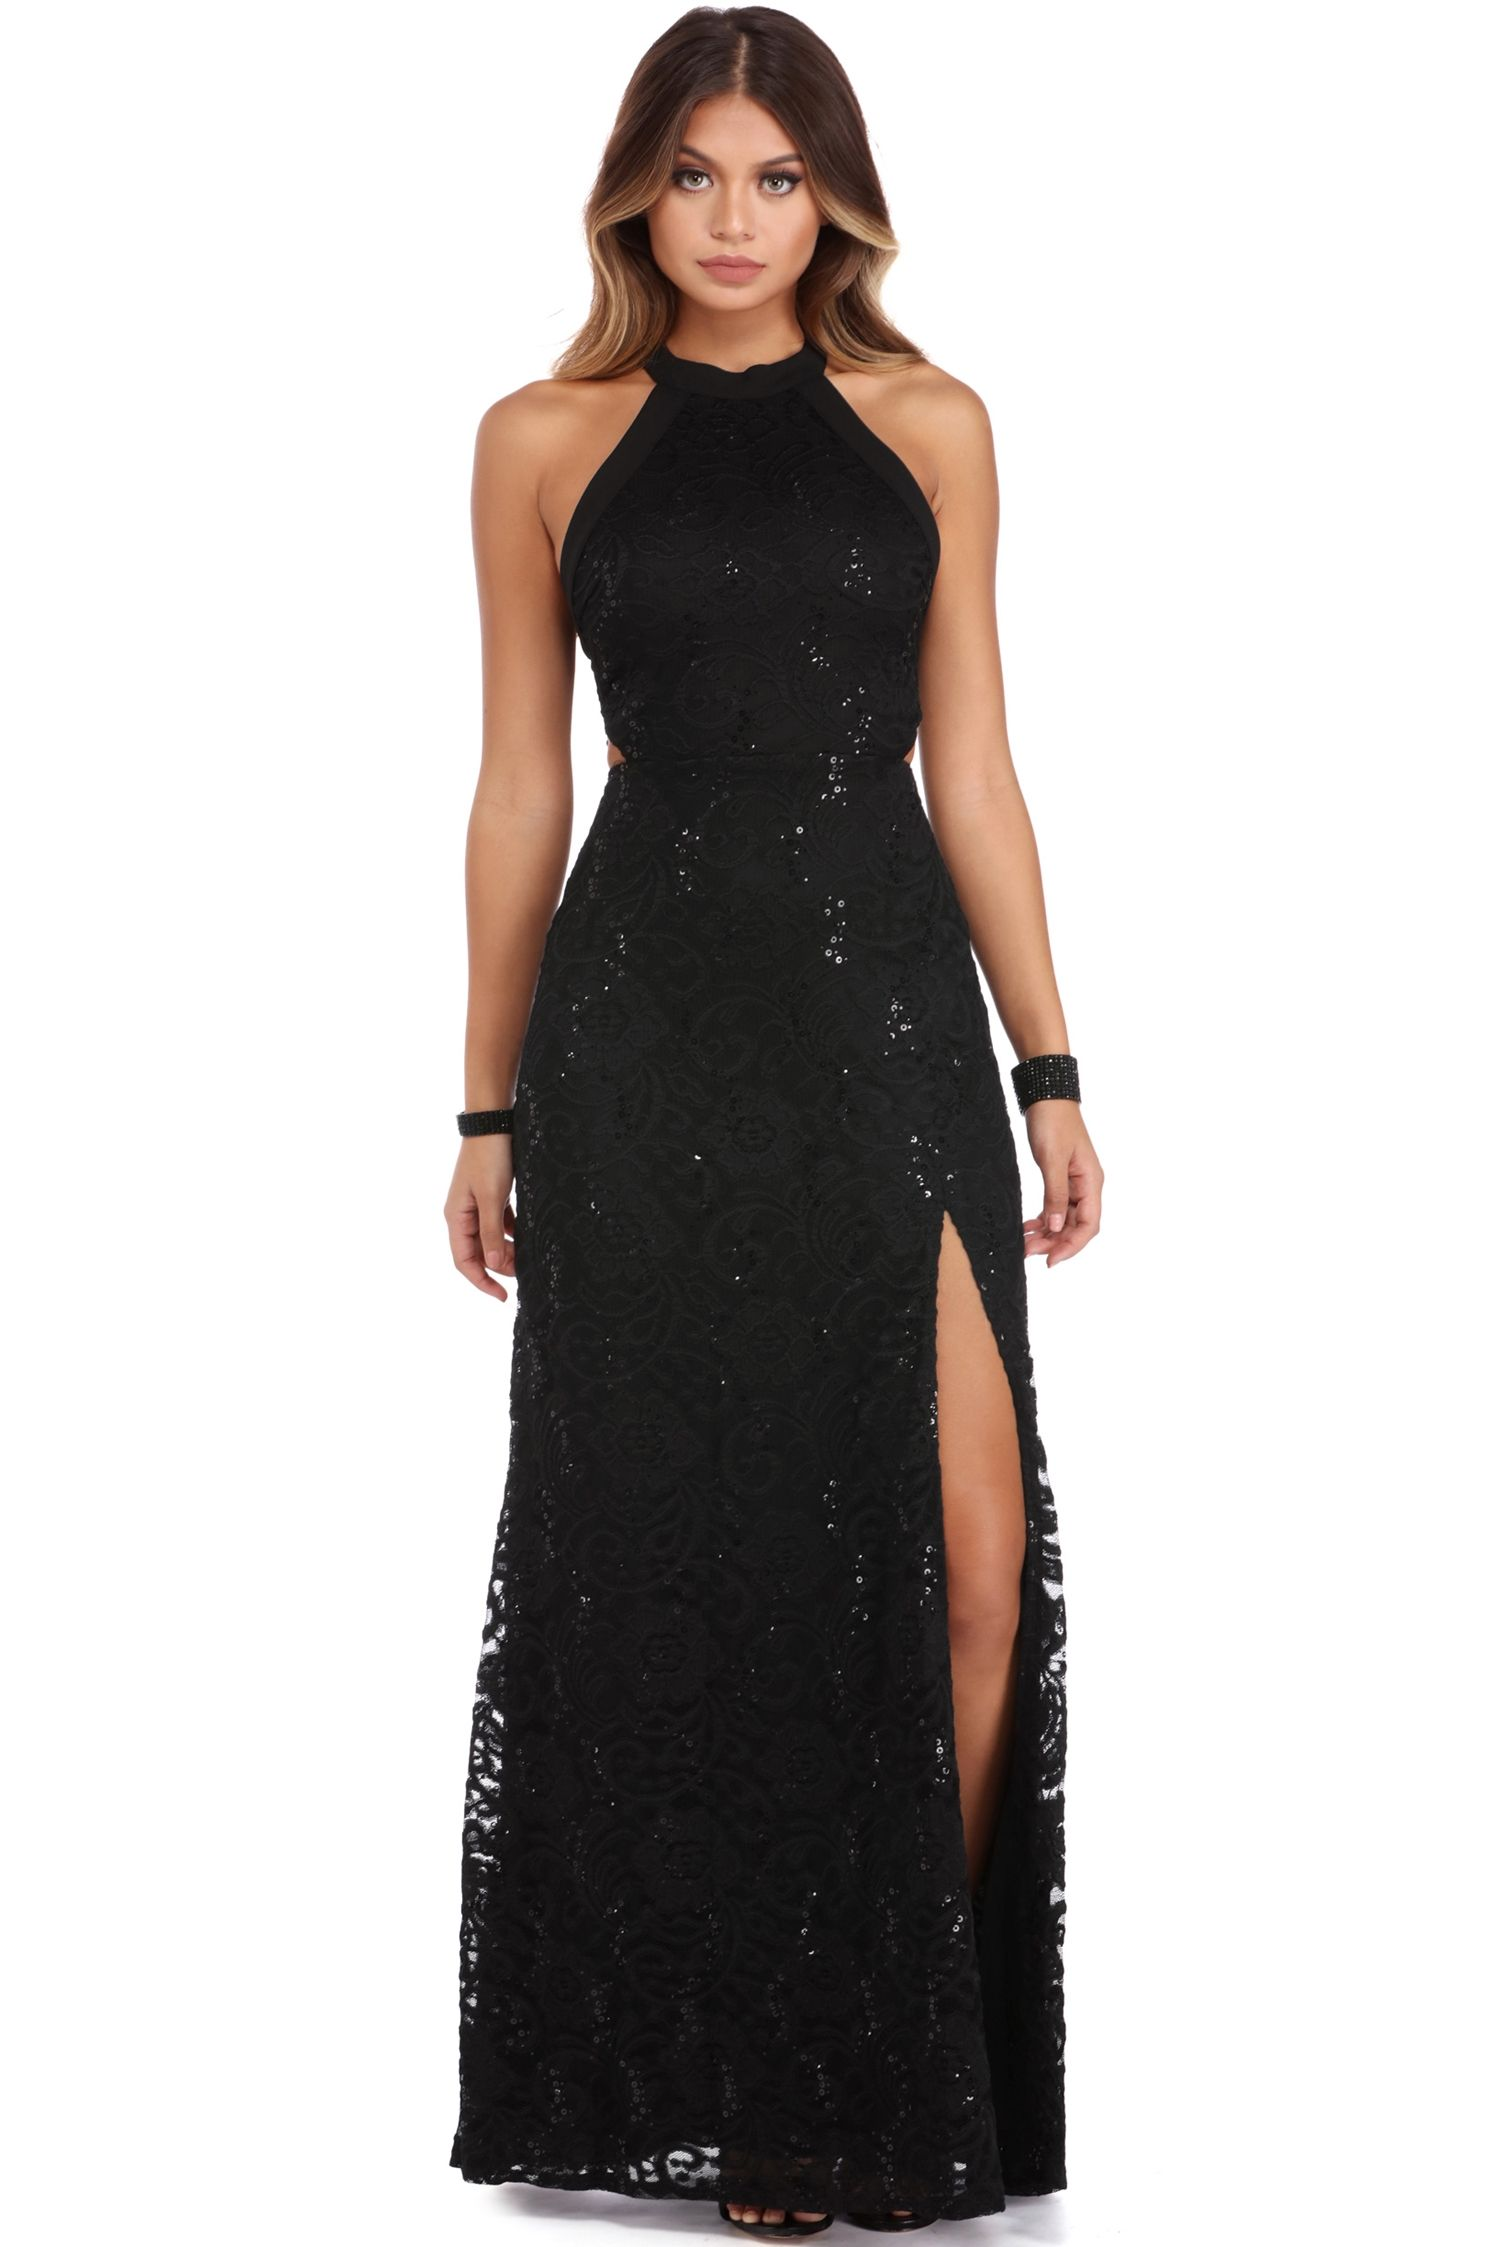 Cassie Black Sophisticated Lace Dress   windsor   Gowns and Dresses ...